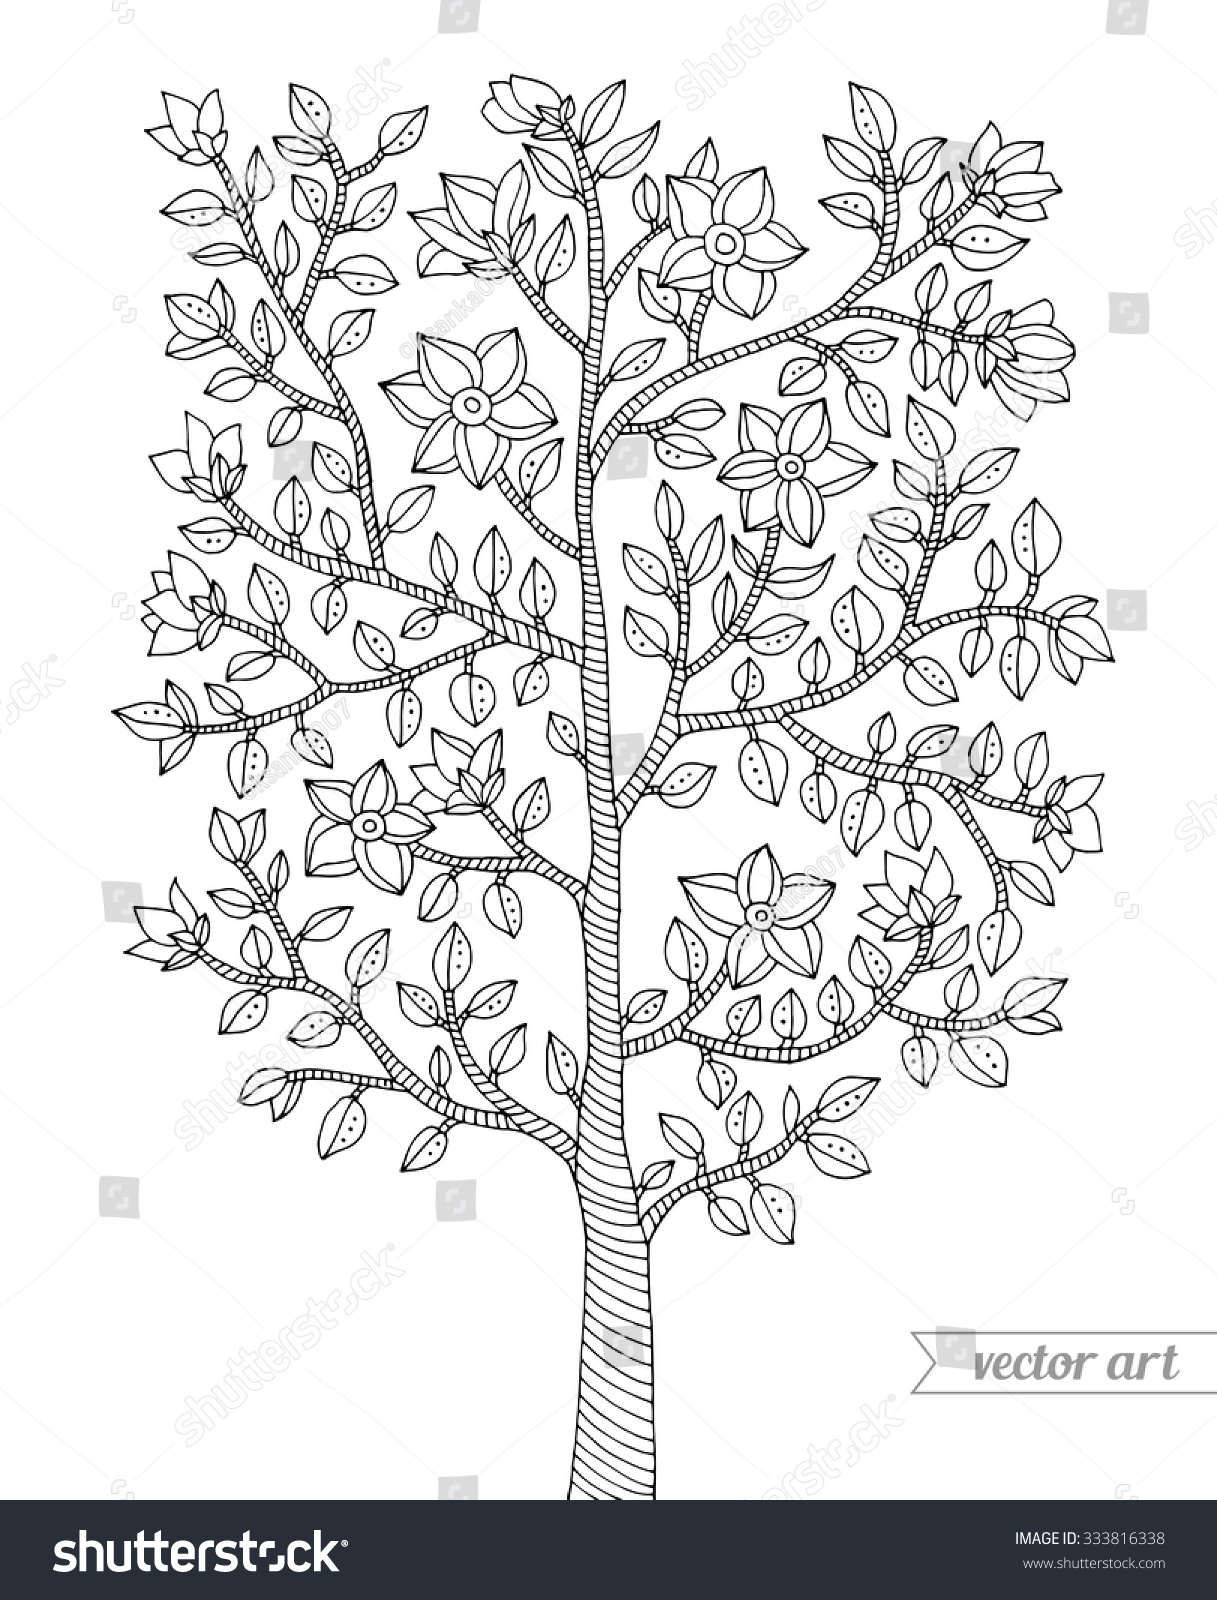 Forest Tree Bush Flowers Blossom Branch Stock Vector